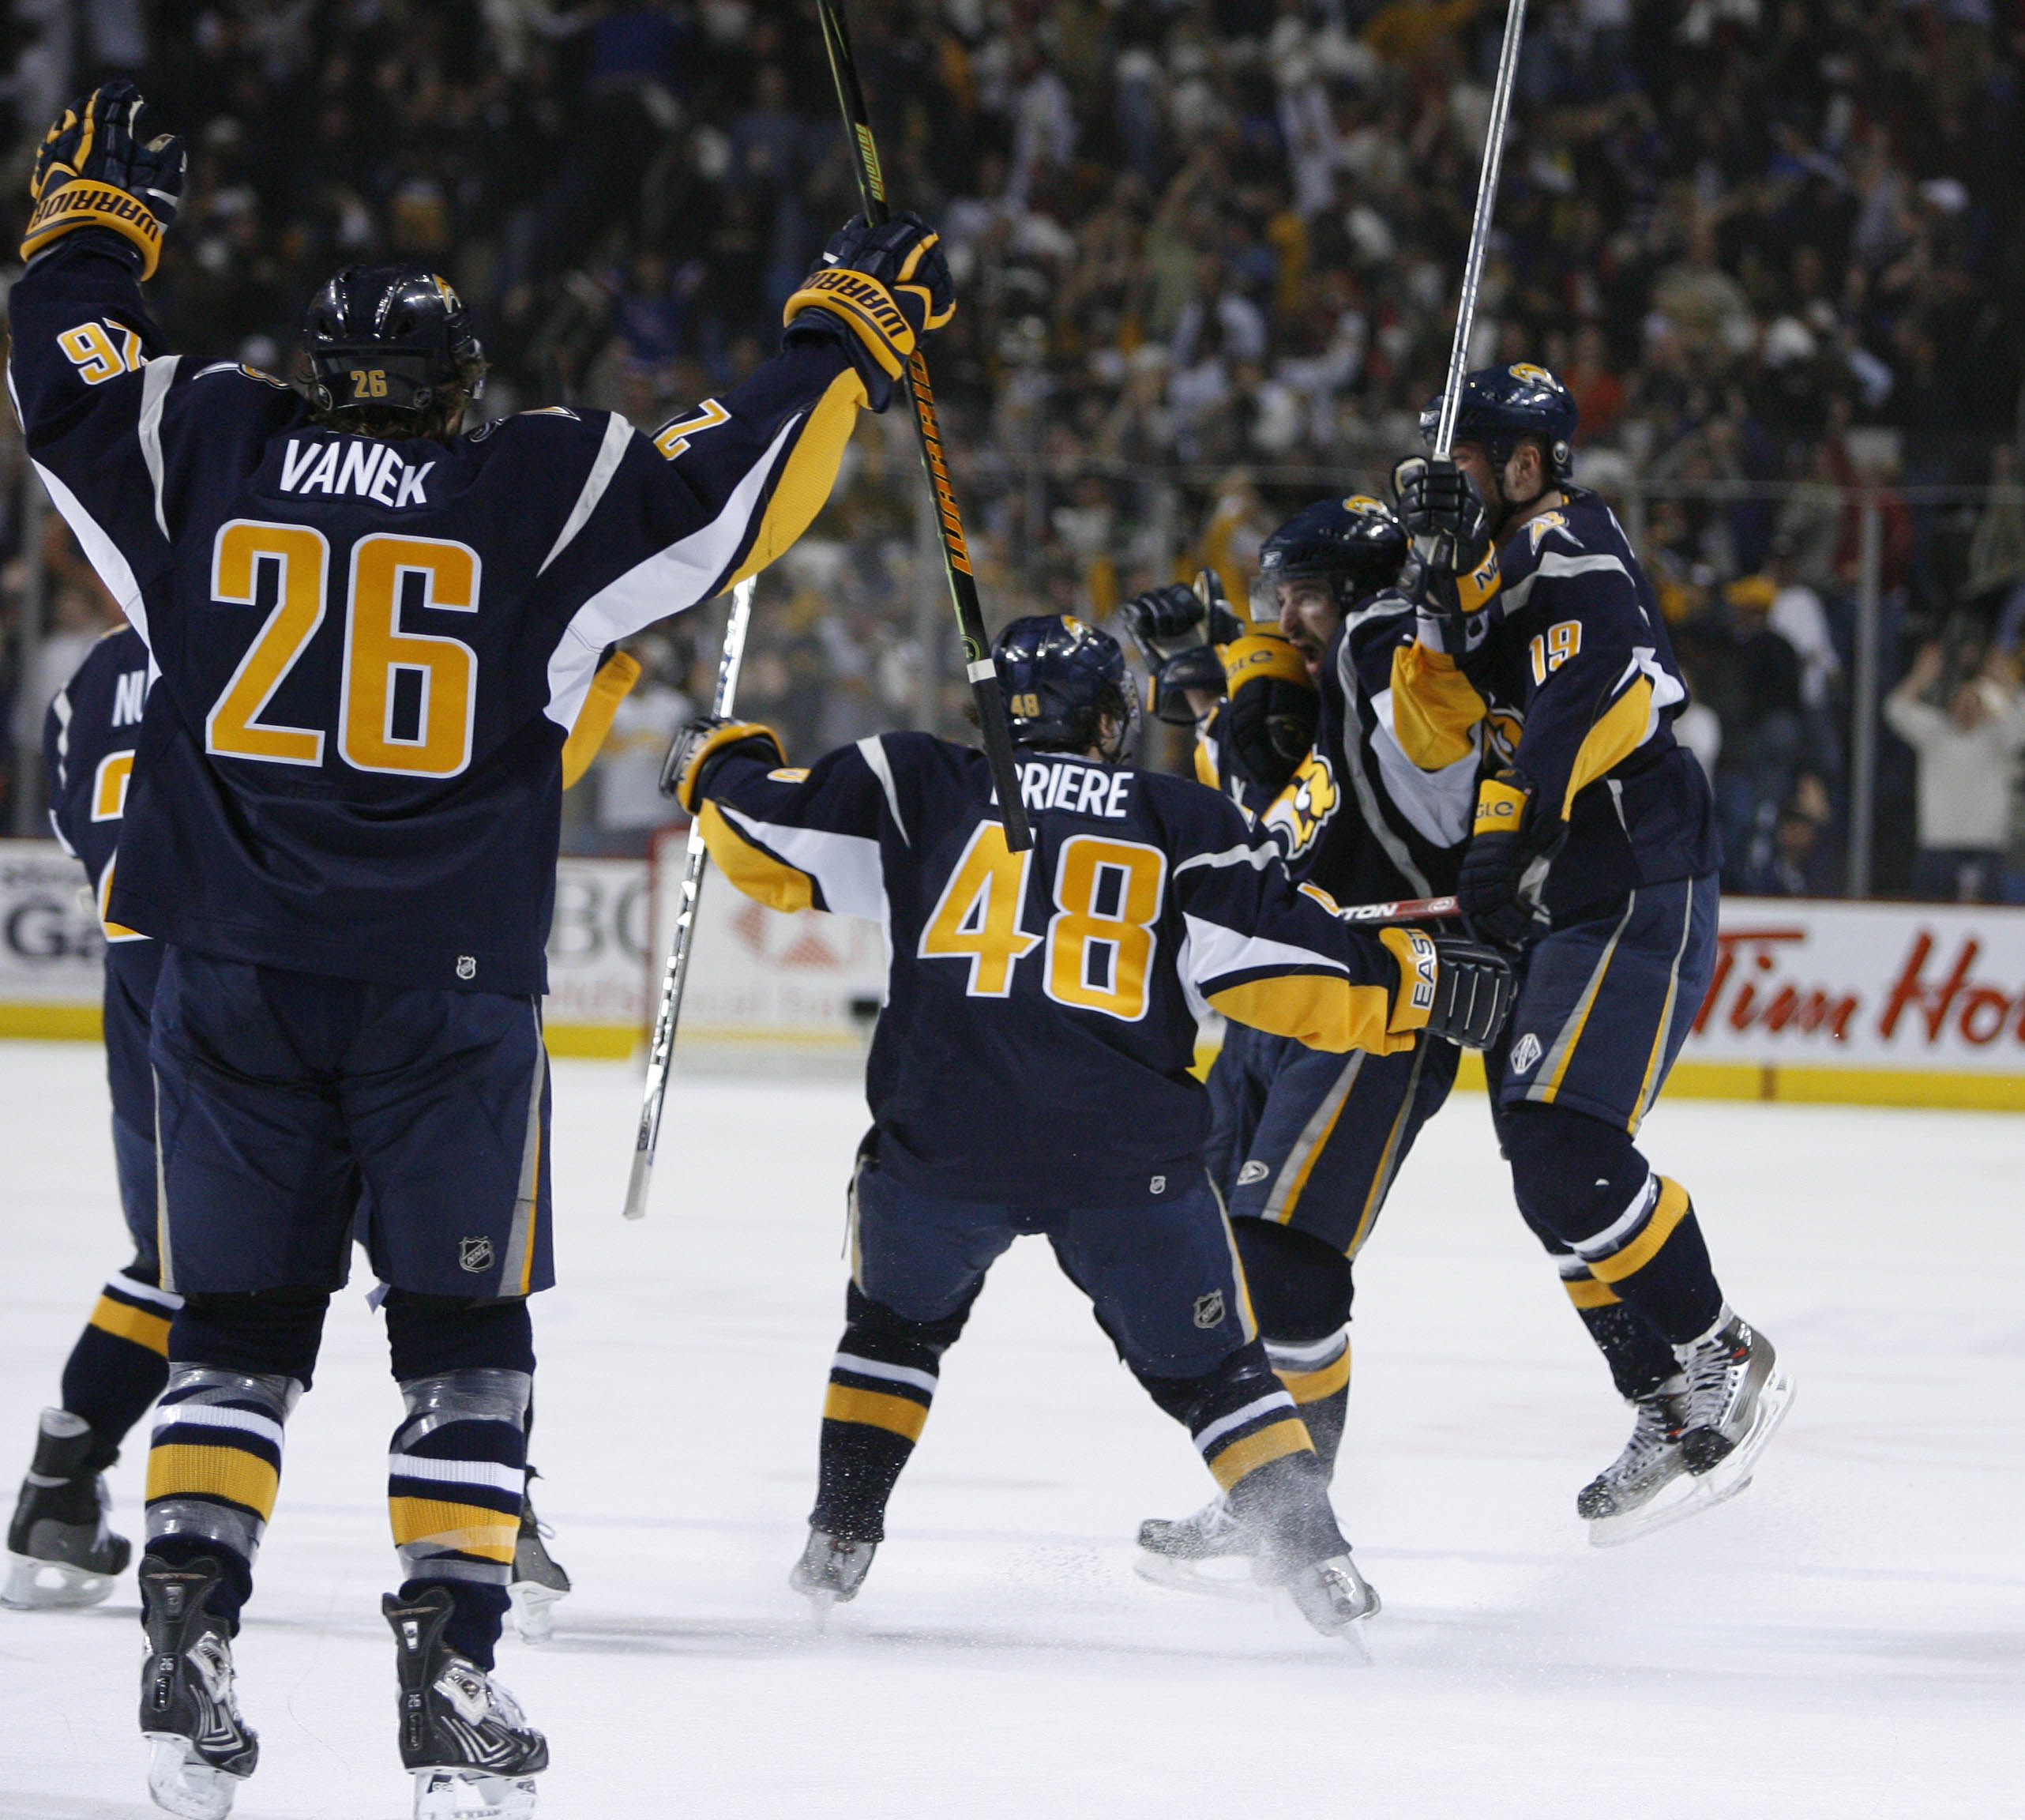 The Sabres celebrate after Chris Drury's tying goal late in the third period of their playoff game against the Rangers at HSBC Arena on Friday, May 4, 2007. (Mark Mulville/Buffalo News)